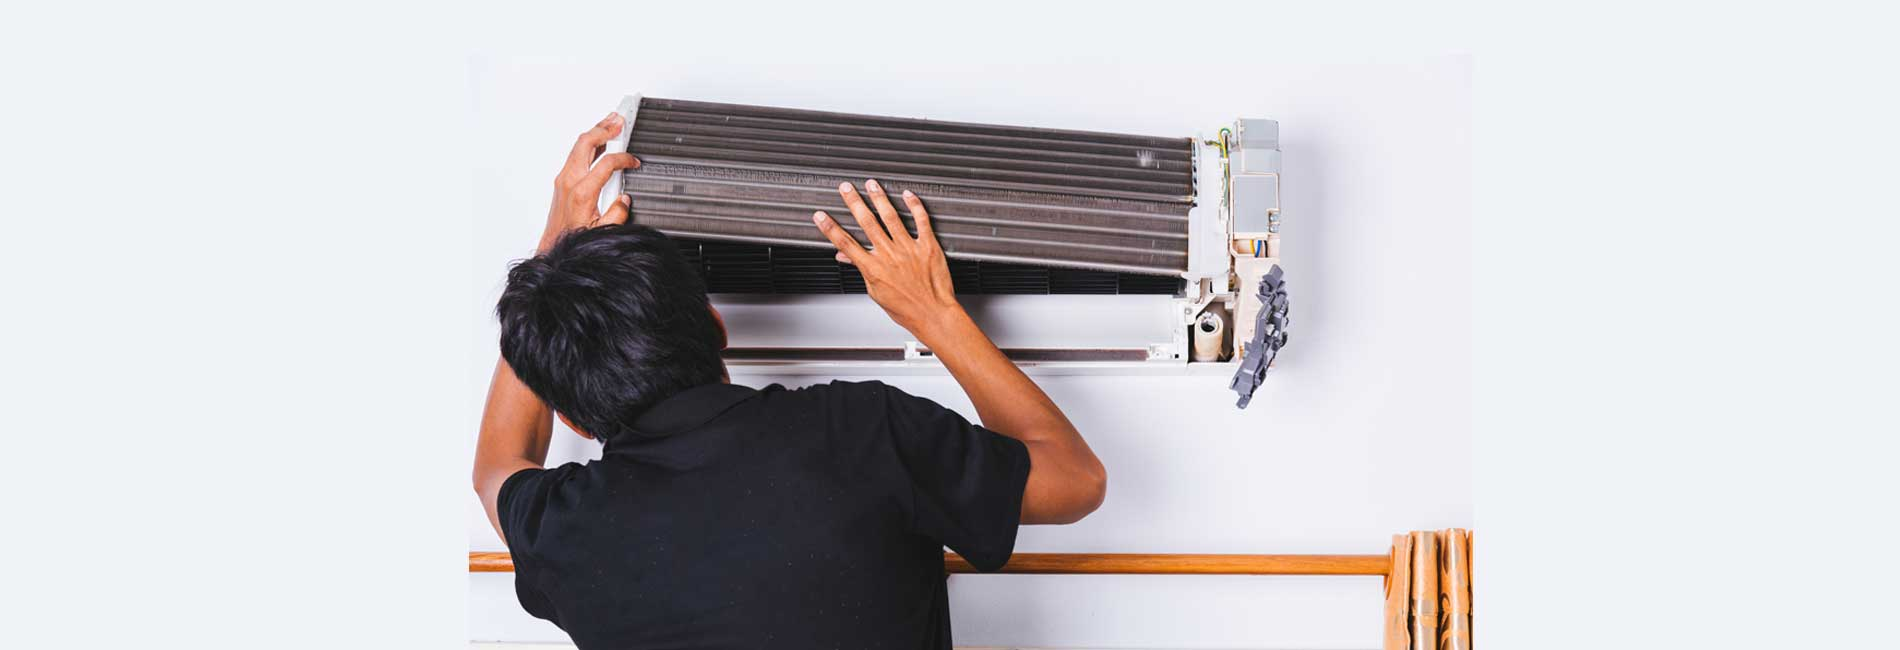 Air Condition Service in Nanmangalam